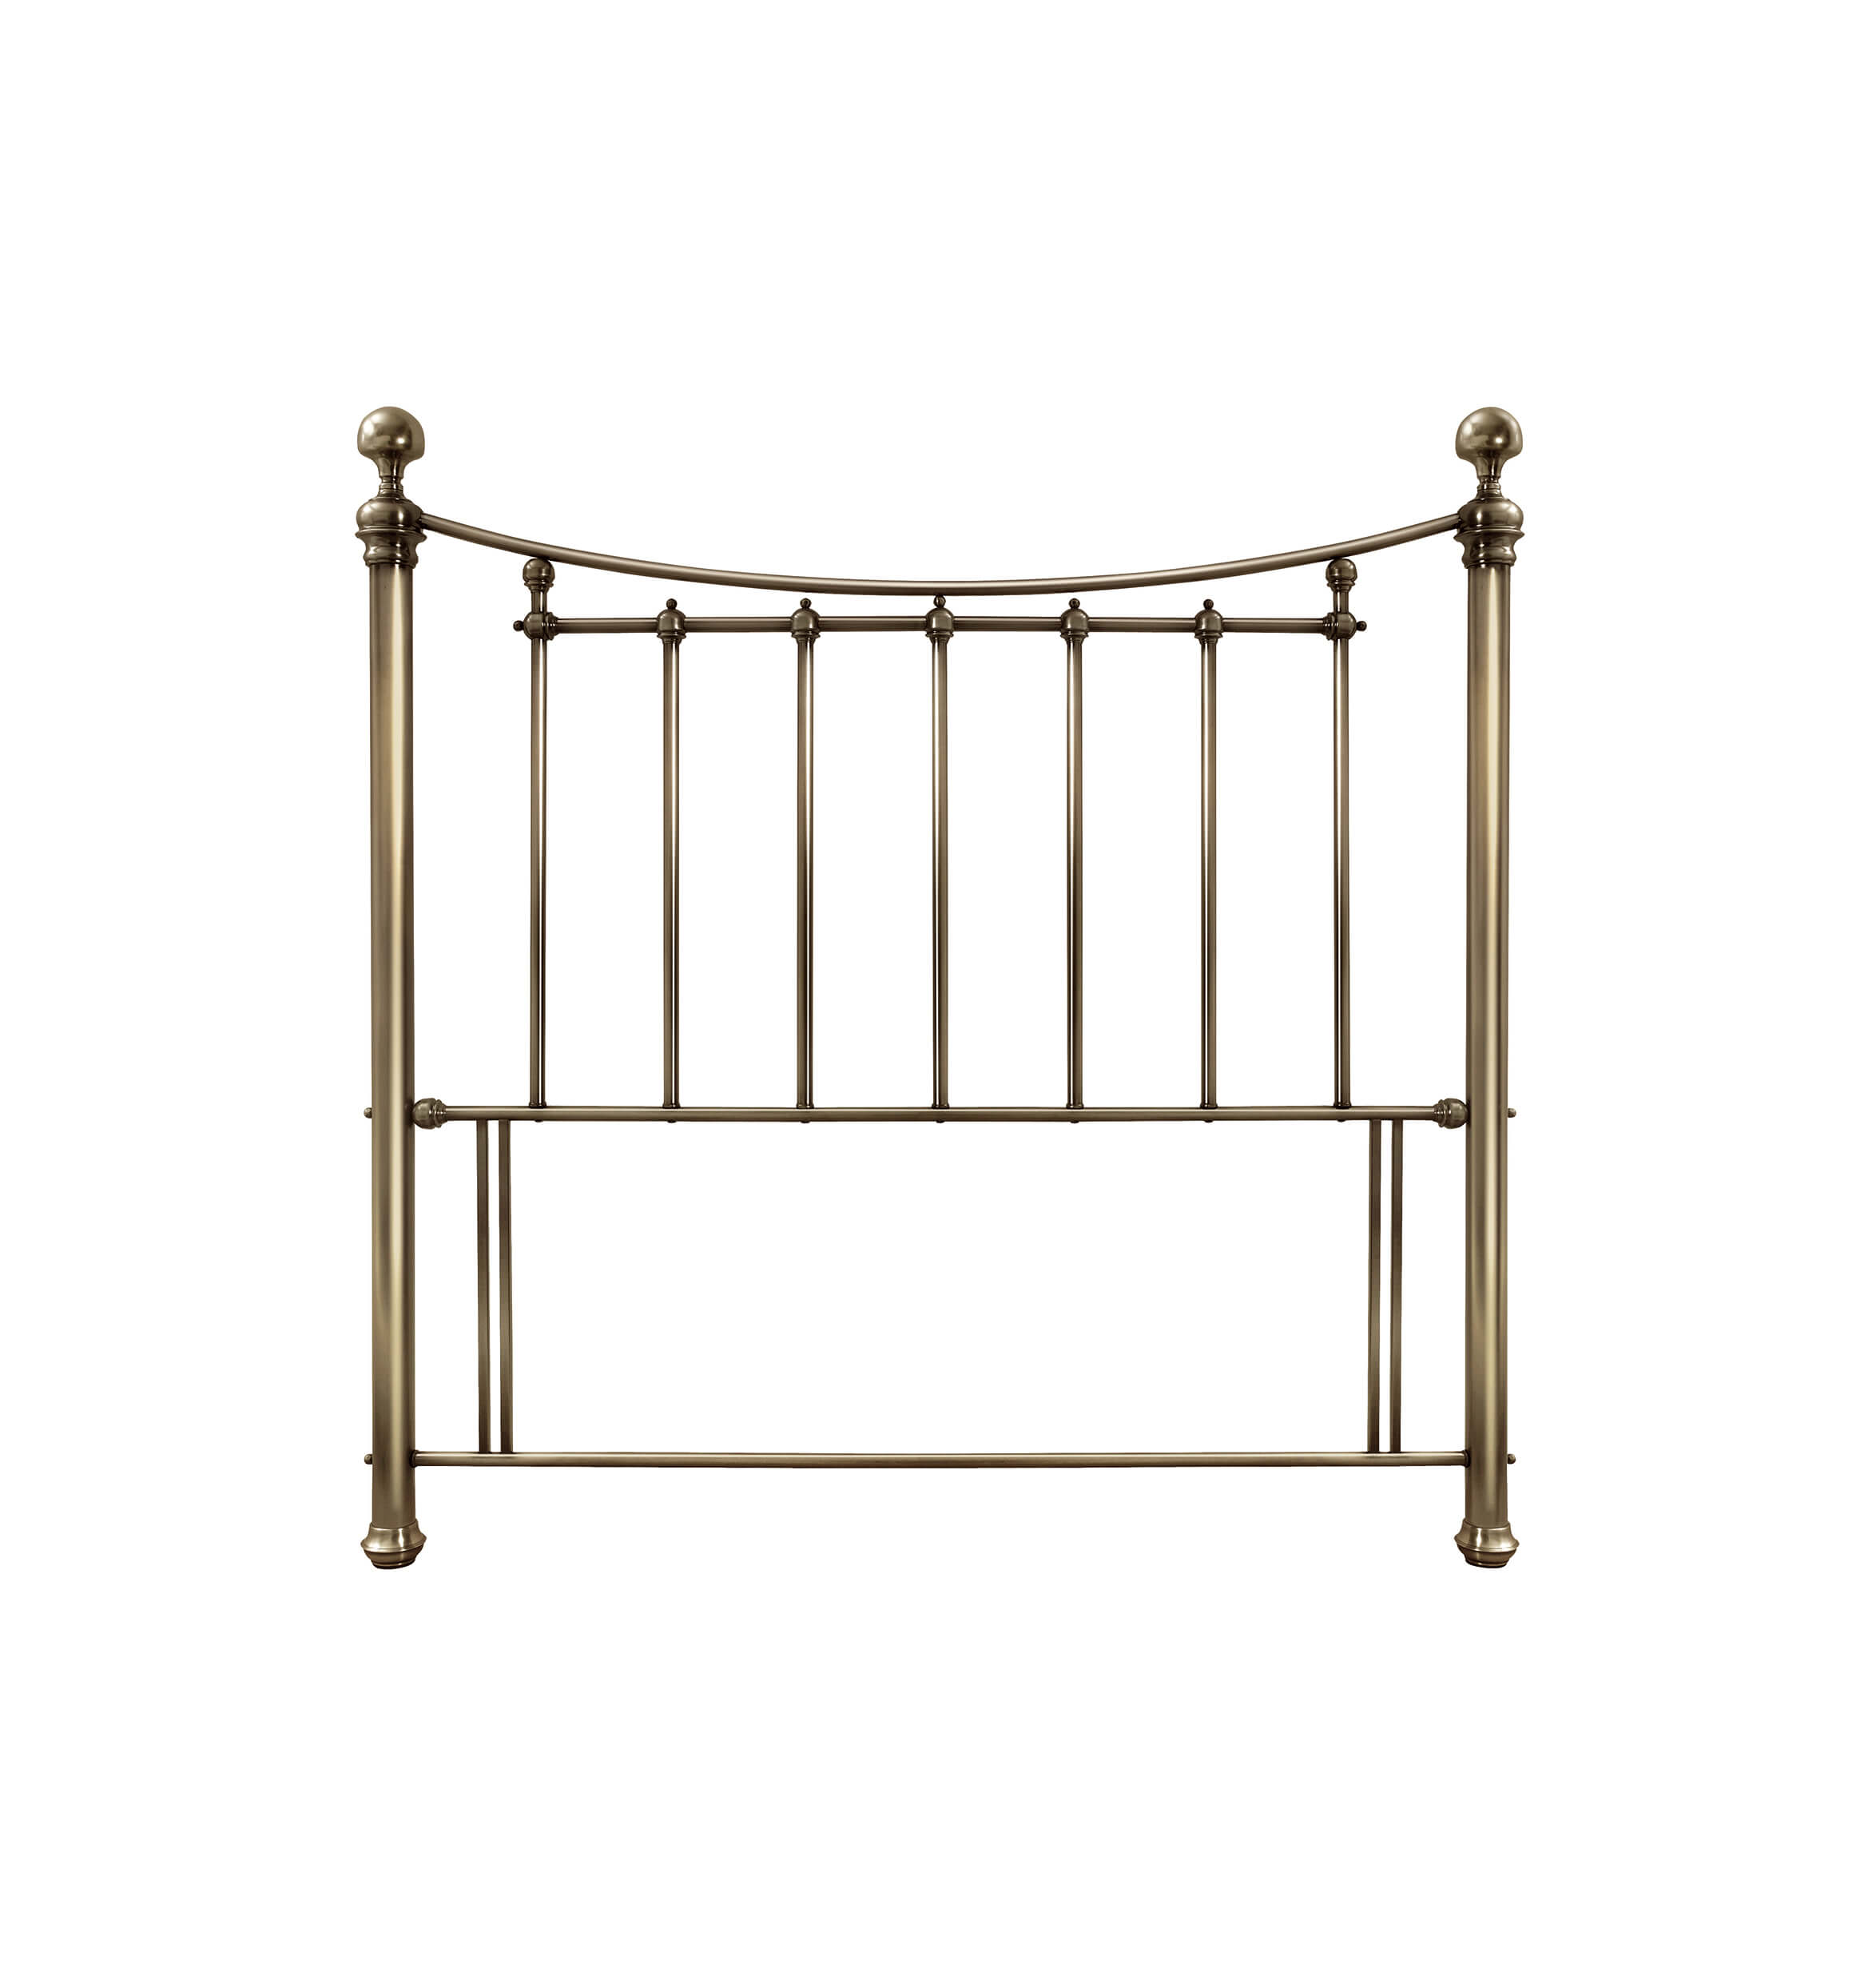 Bentley Designs Isabelle Headboard Antique Brass